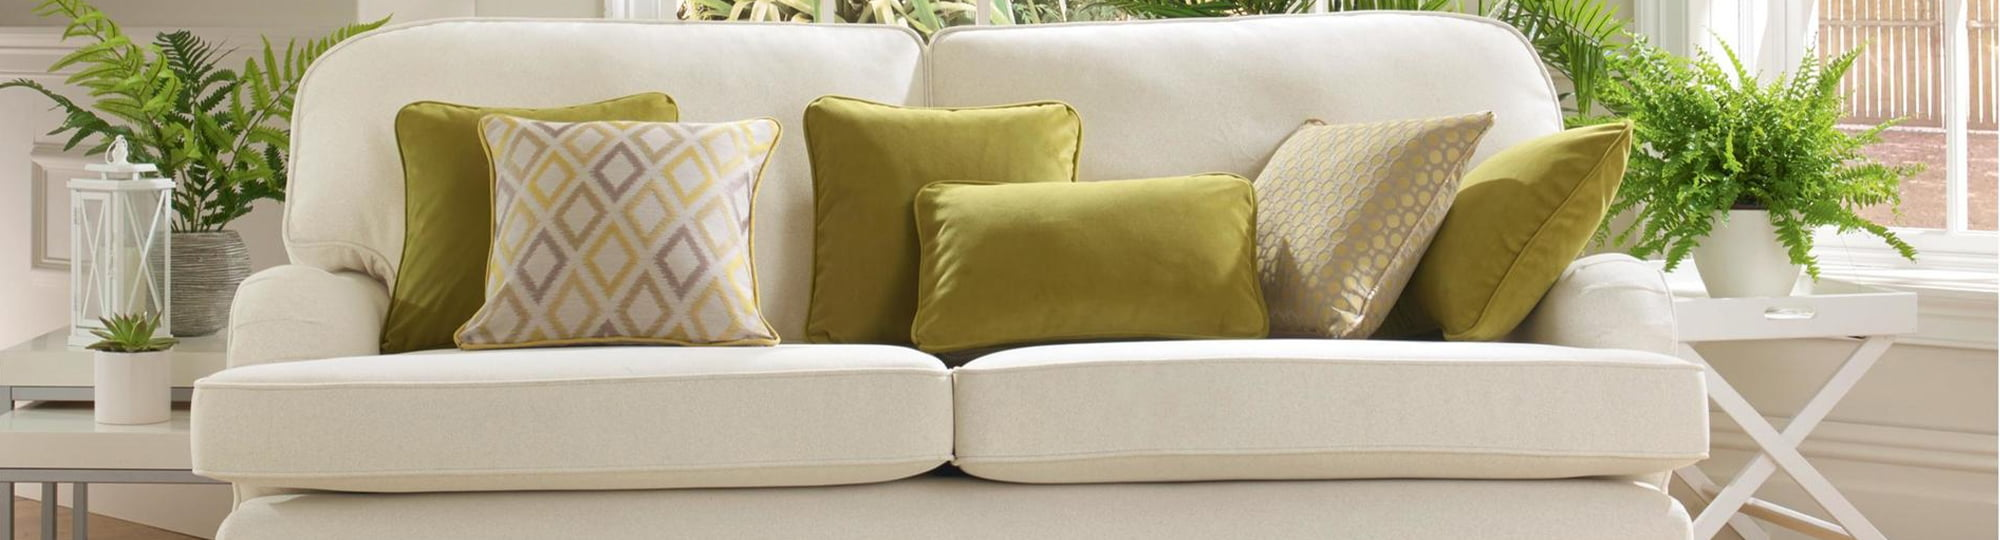 Aquaclean replacement sofa covers